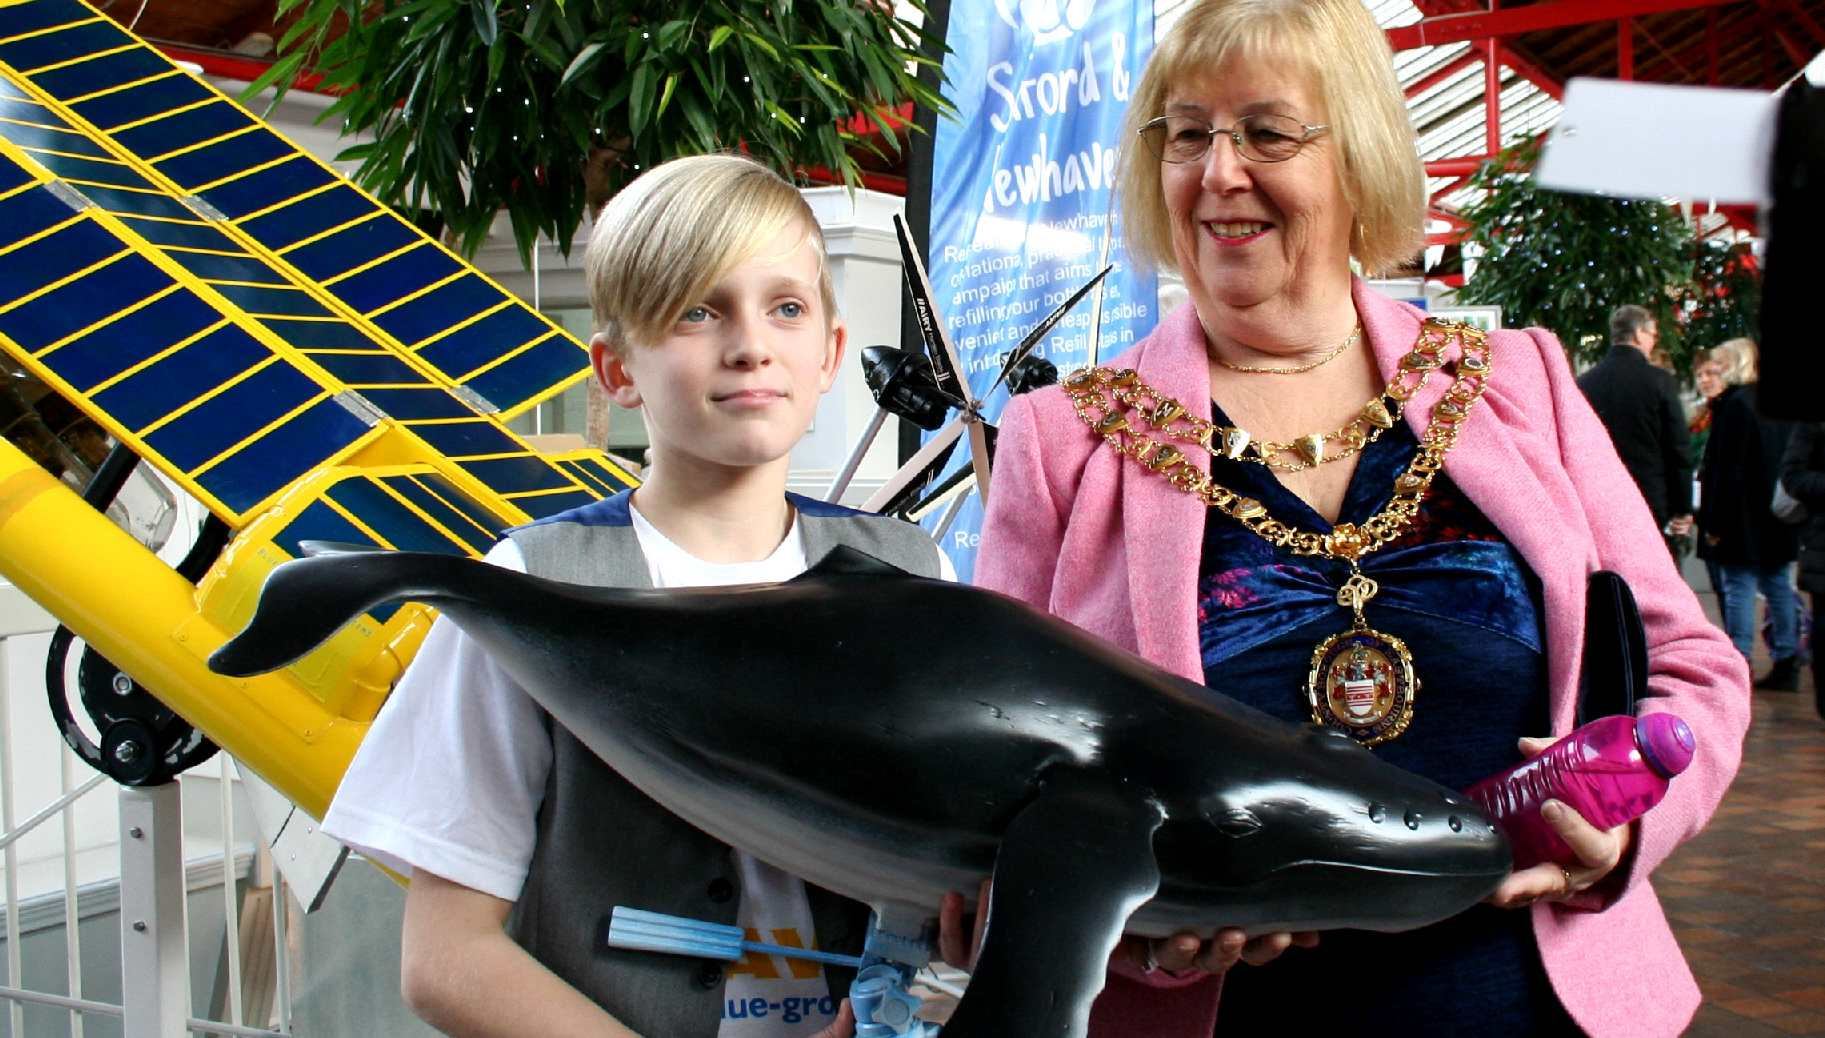 Kulo Luna the humpback whale model with Gill Mattock Mayor of Eastbourne